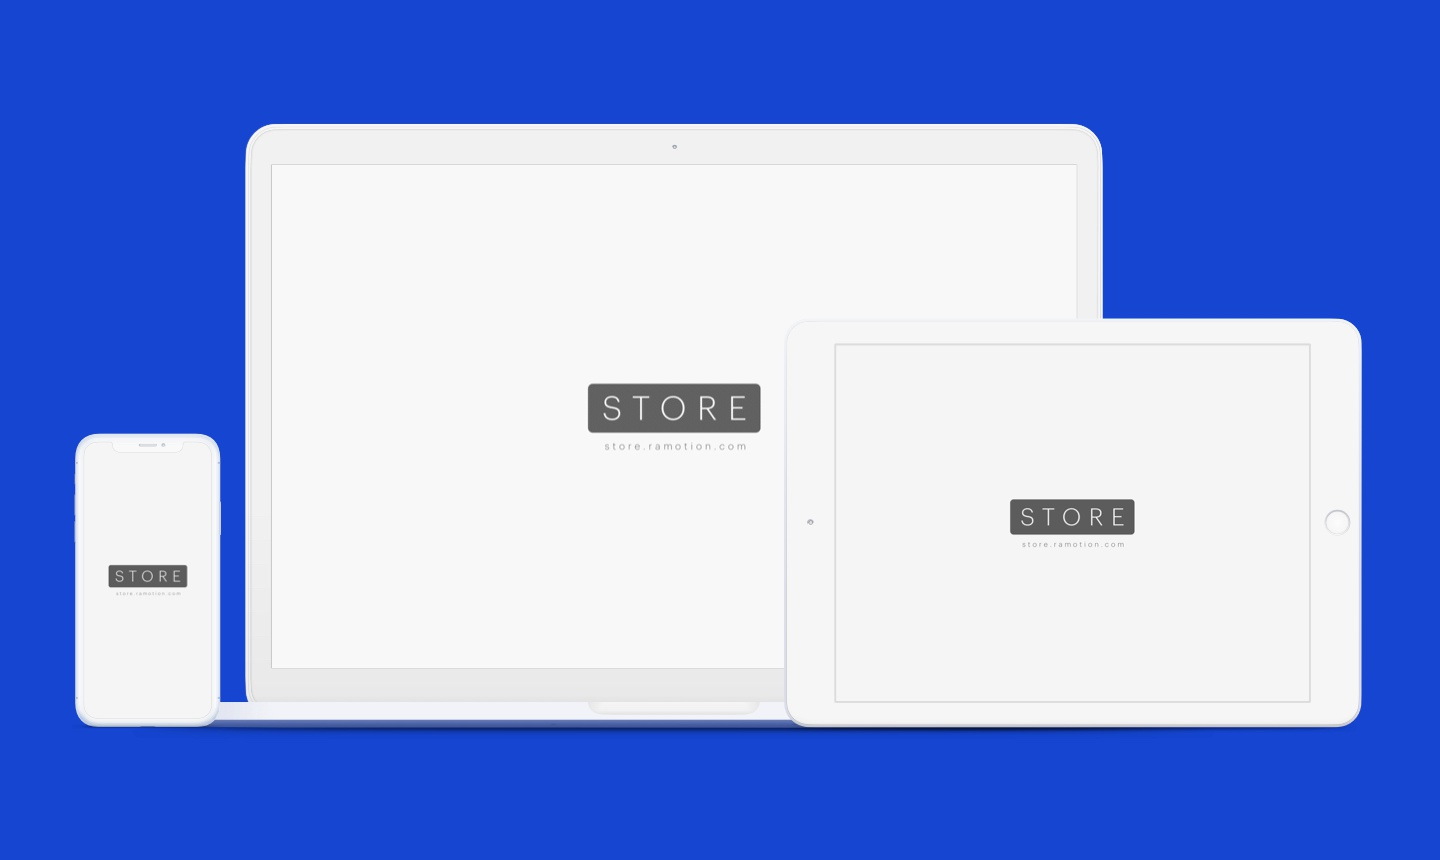 Iphone macbook frontal ipad landscape clay white mockup sketch